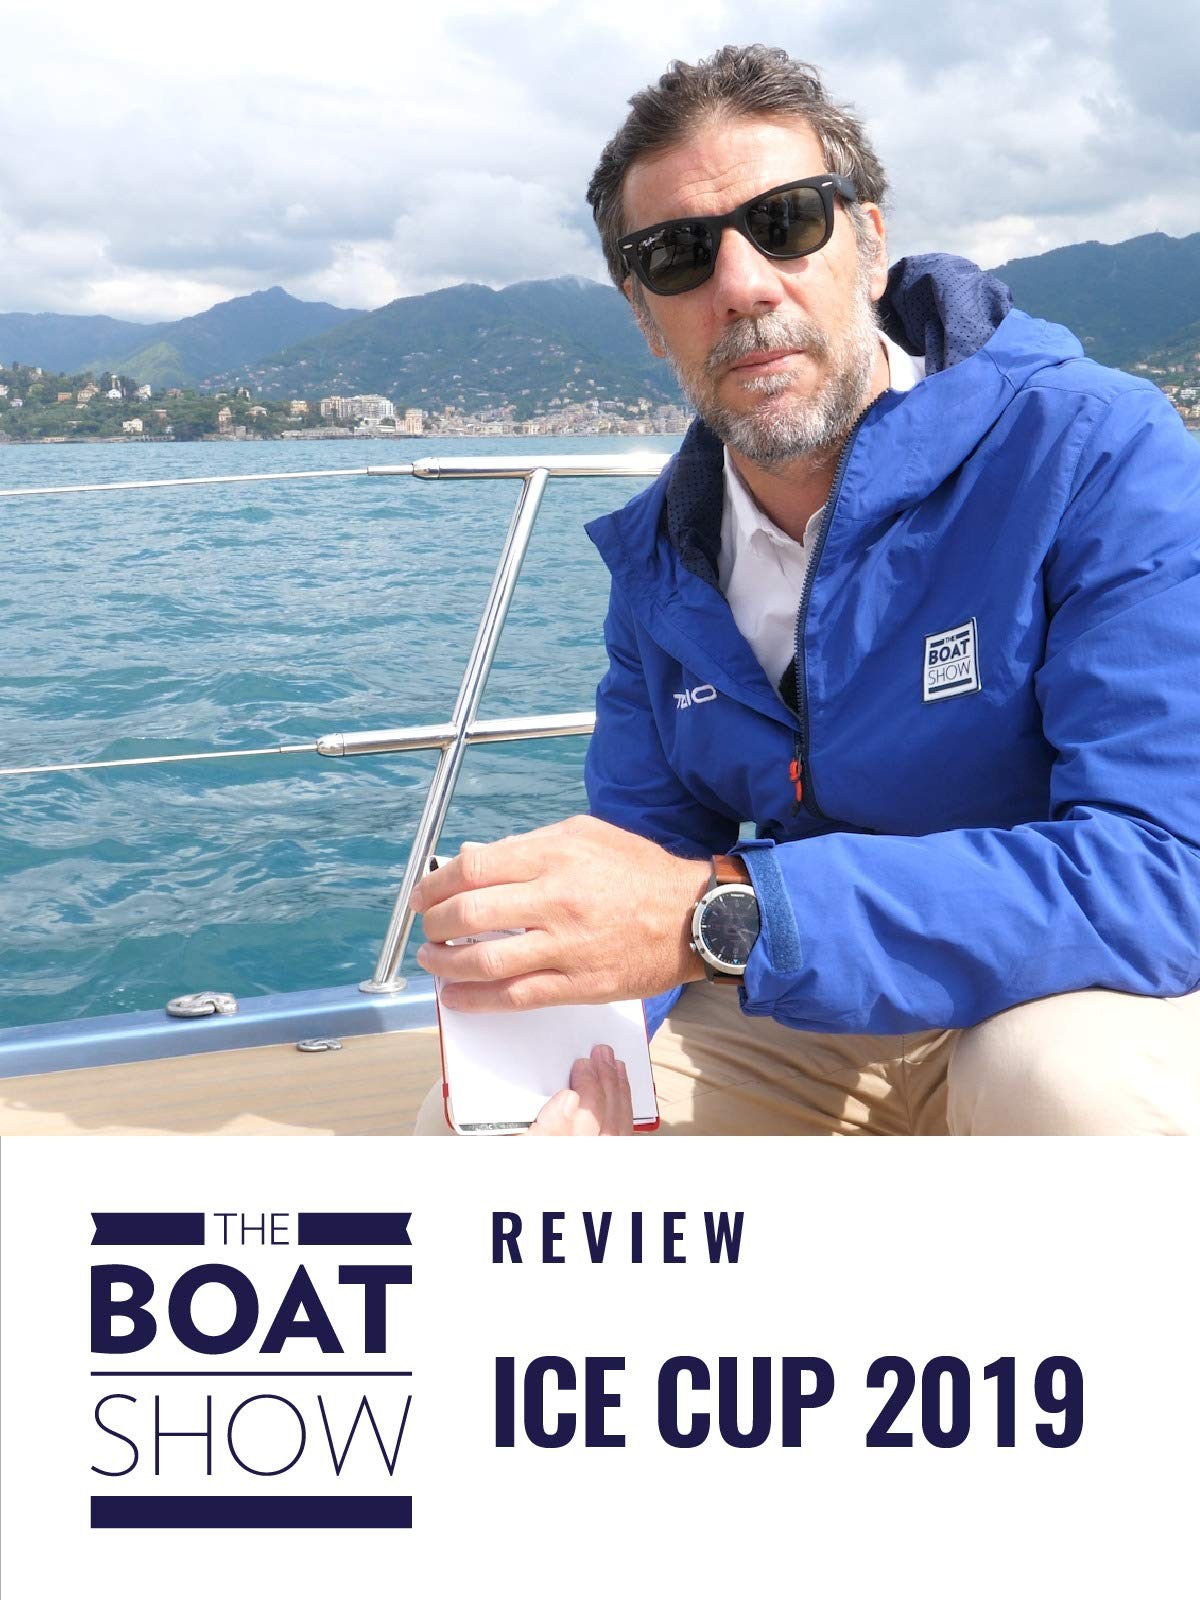 Clip: Ice Cup 2019 - The Boat Show